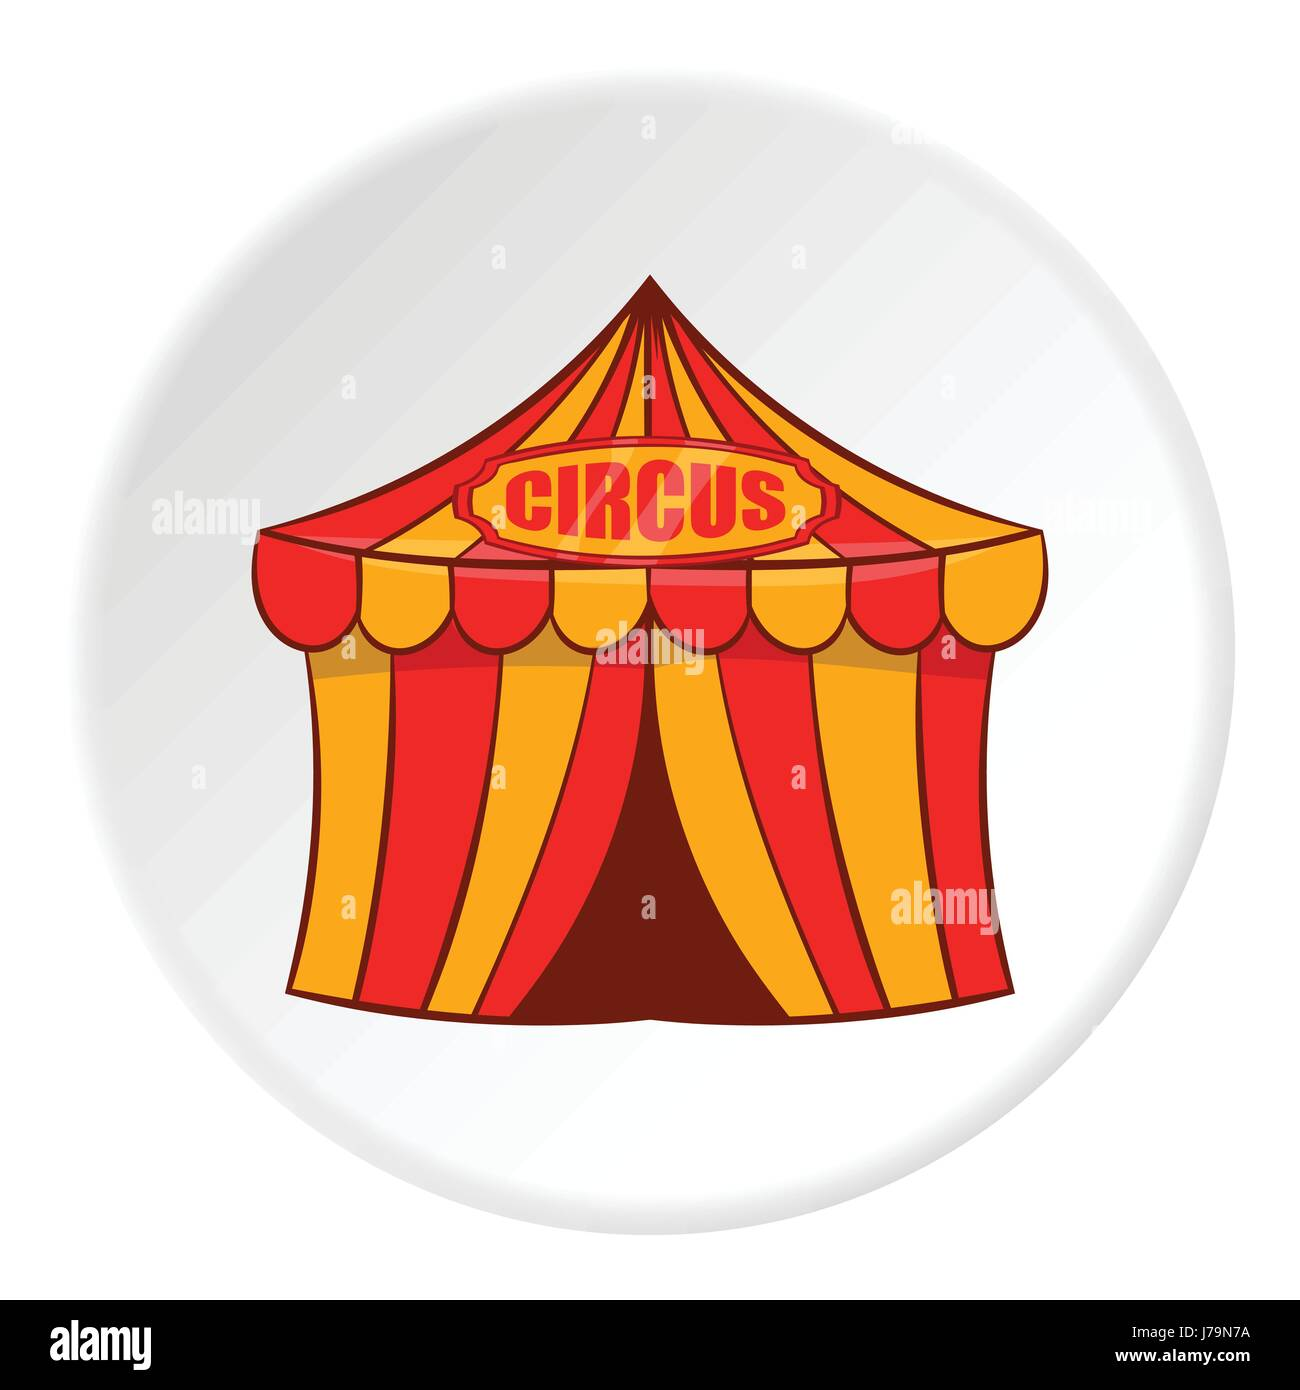 Striped circus tent icon in cartoon style isolated on white circle background. Entertainment symbol vector illustration  sc 1 st  Alamy & Striped circus tent icon in cartoon style isolated on white circle ...